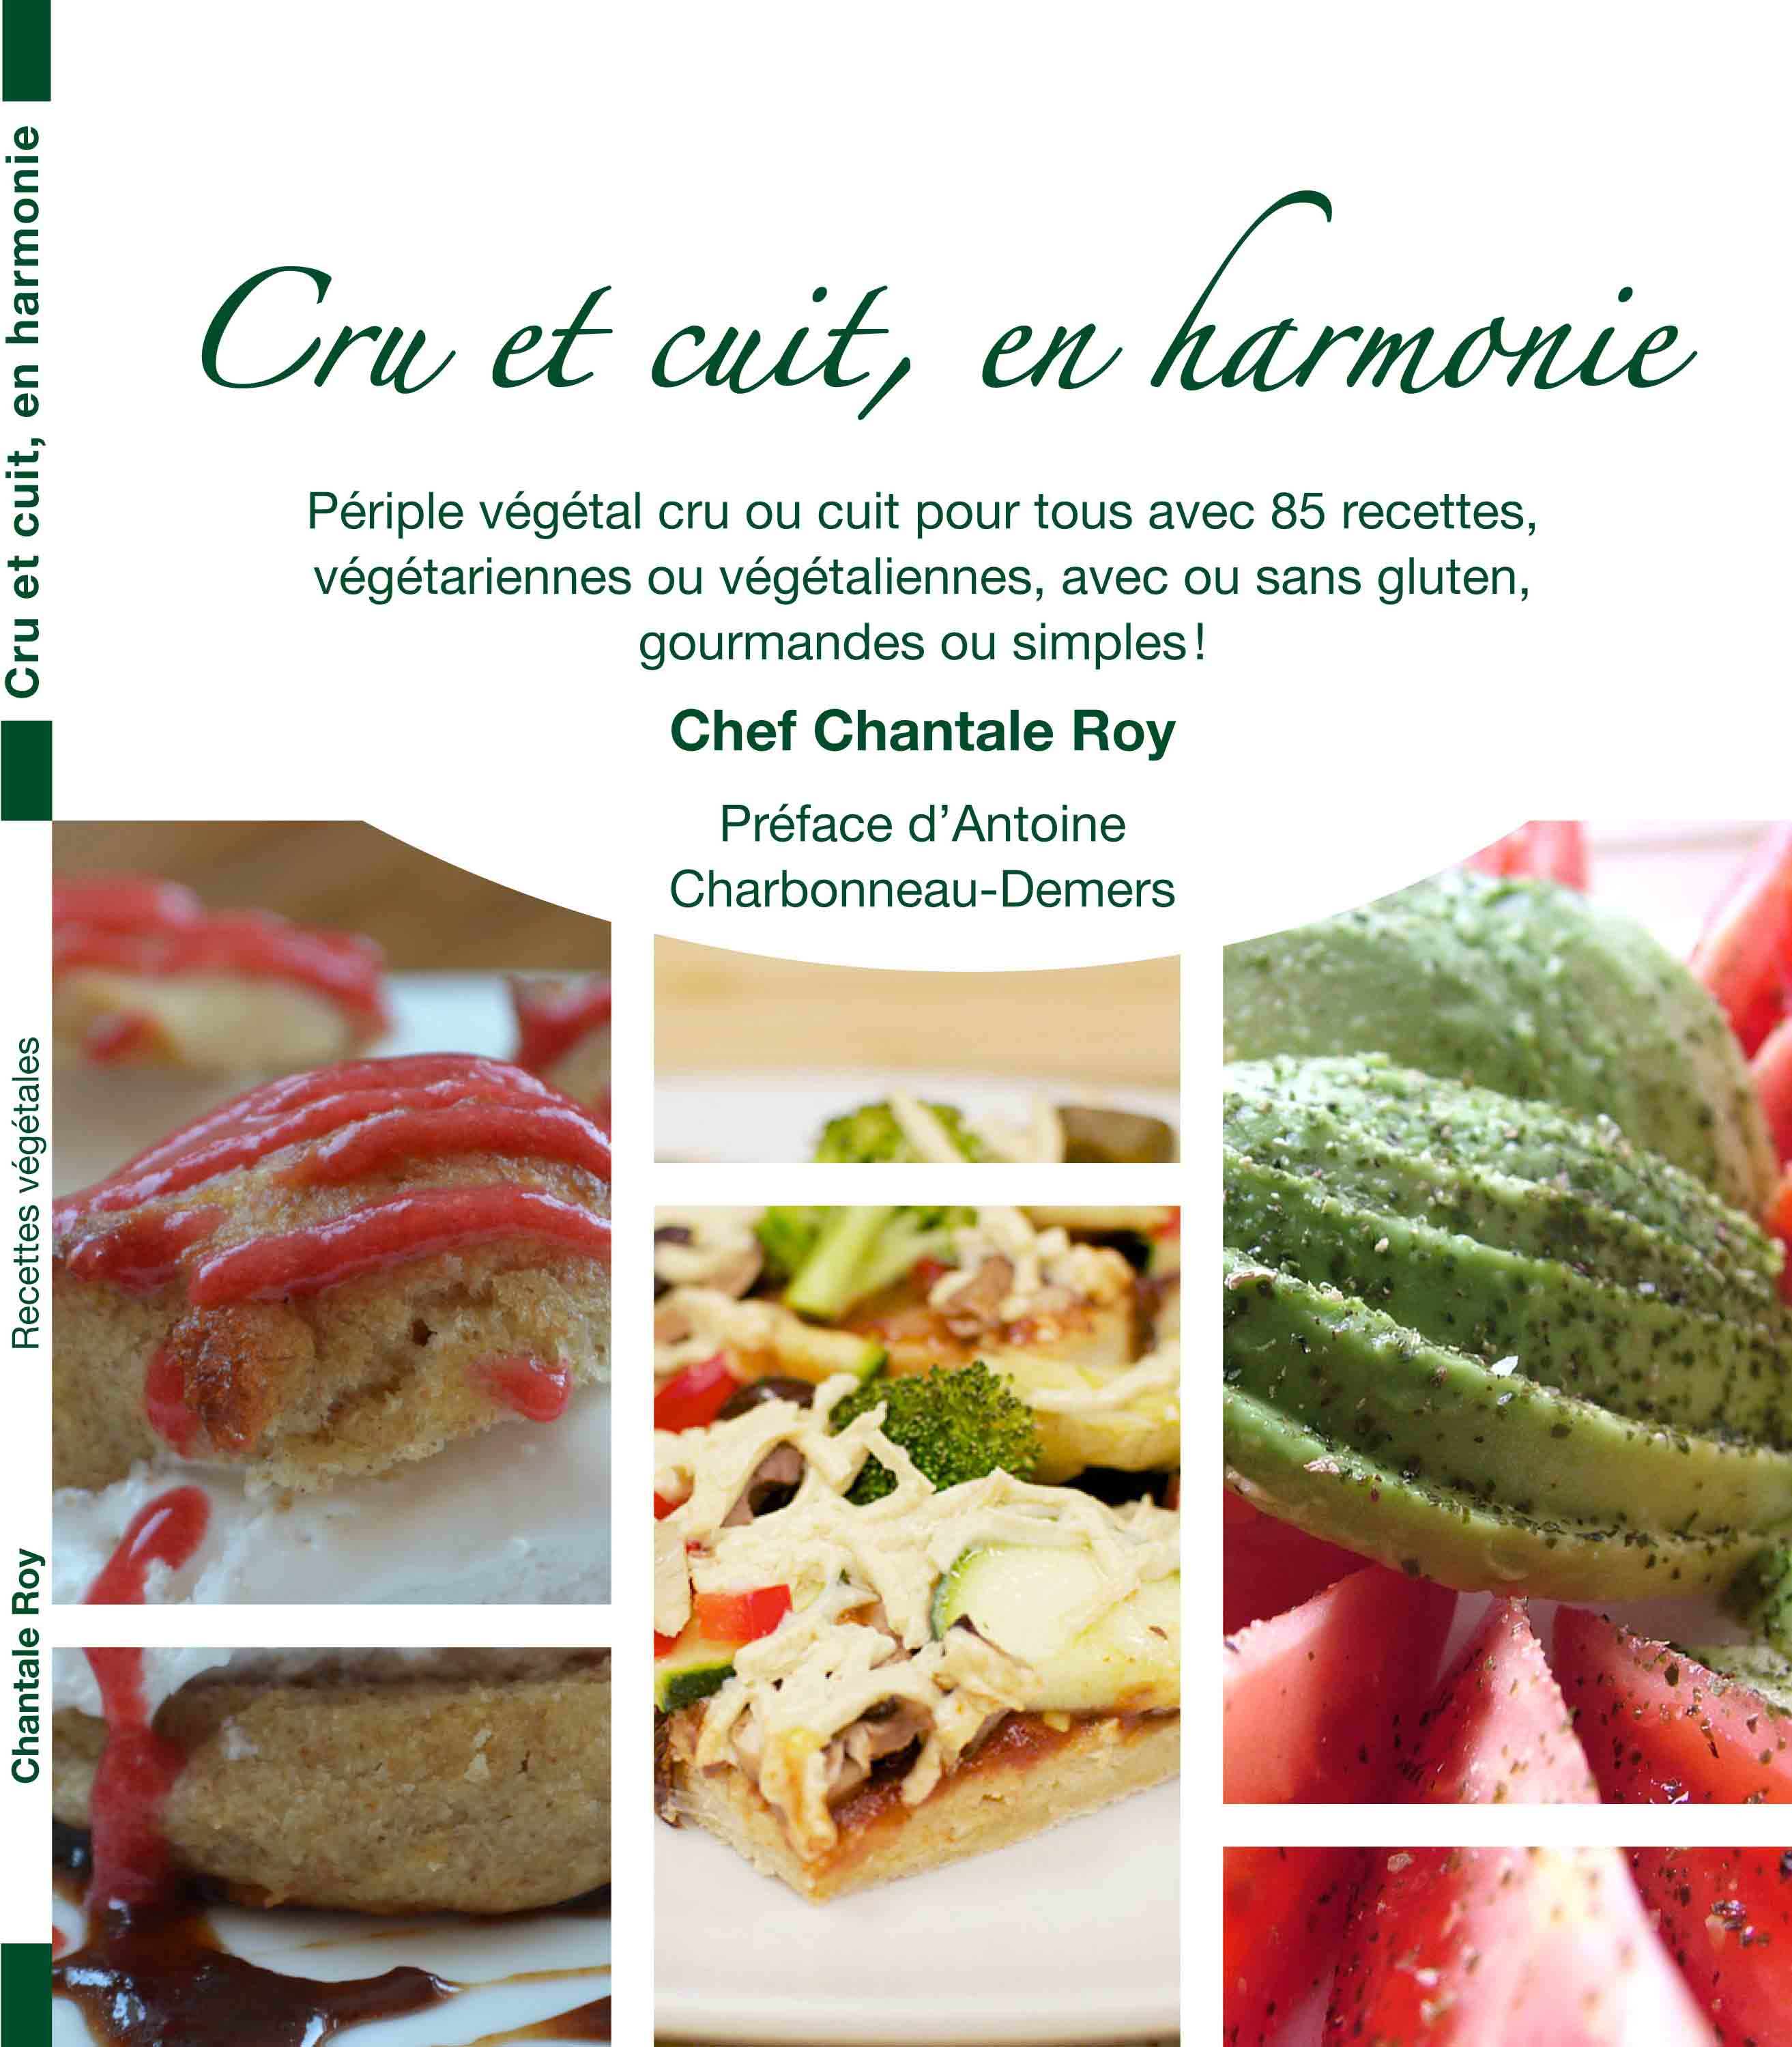 Cours De Cuisine Vegetarienne Paris Chantale Roy Chantale Roy